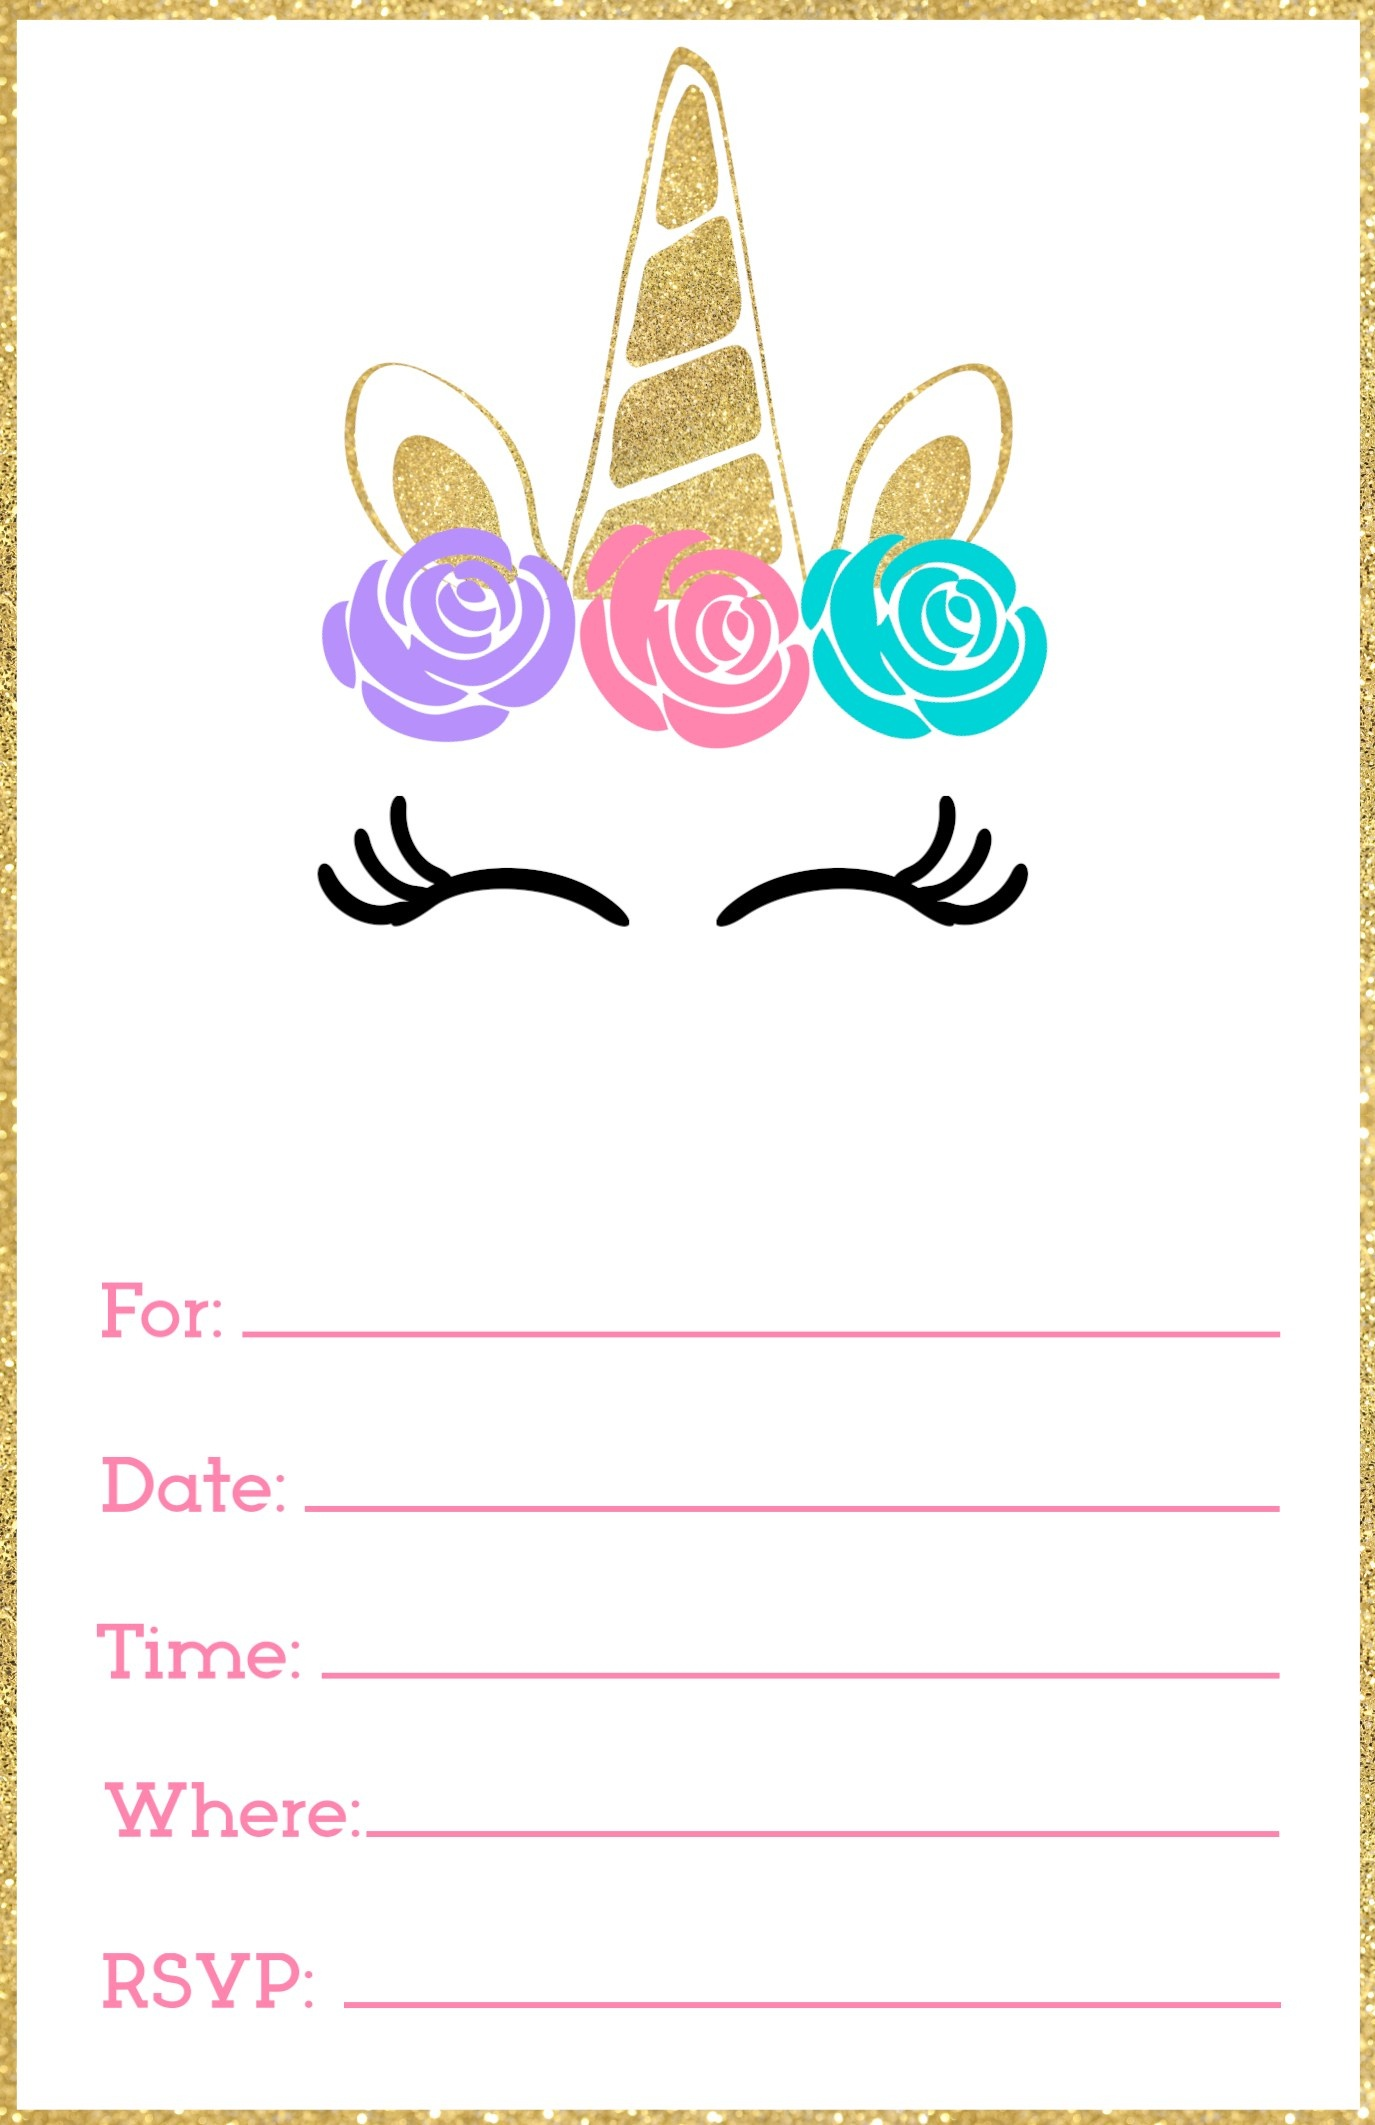 Free Printable Unicorn Invitations Template - Paper Trail Design - Free Printable Party Invitations